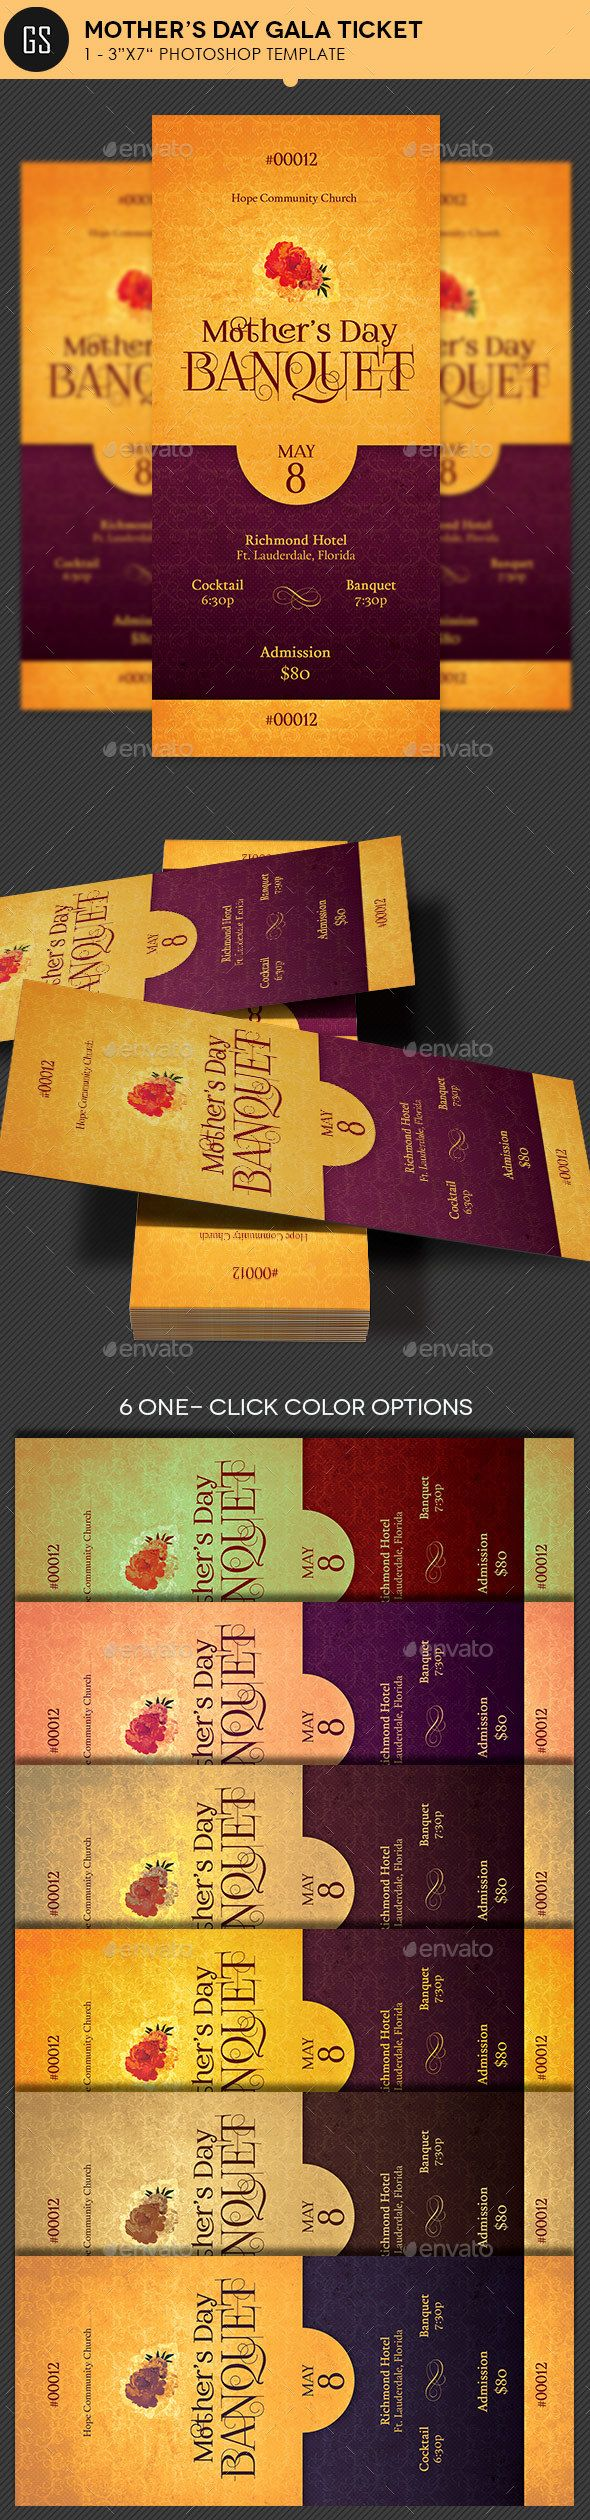 Mothers Day Gala Ticket Photoshop Template